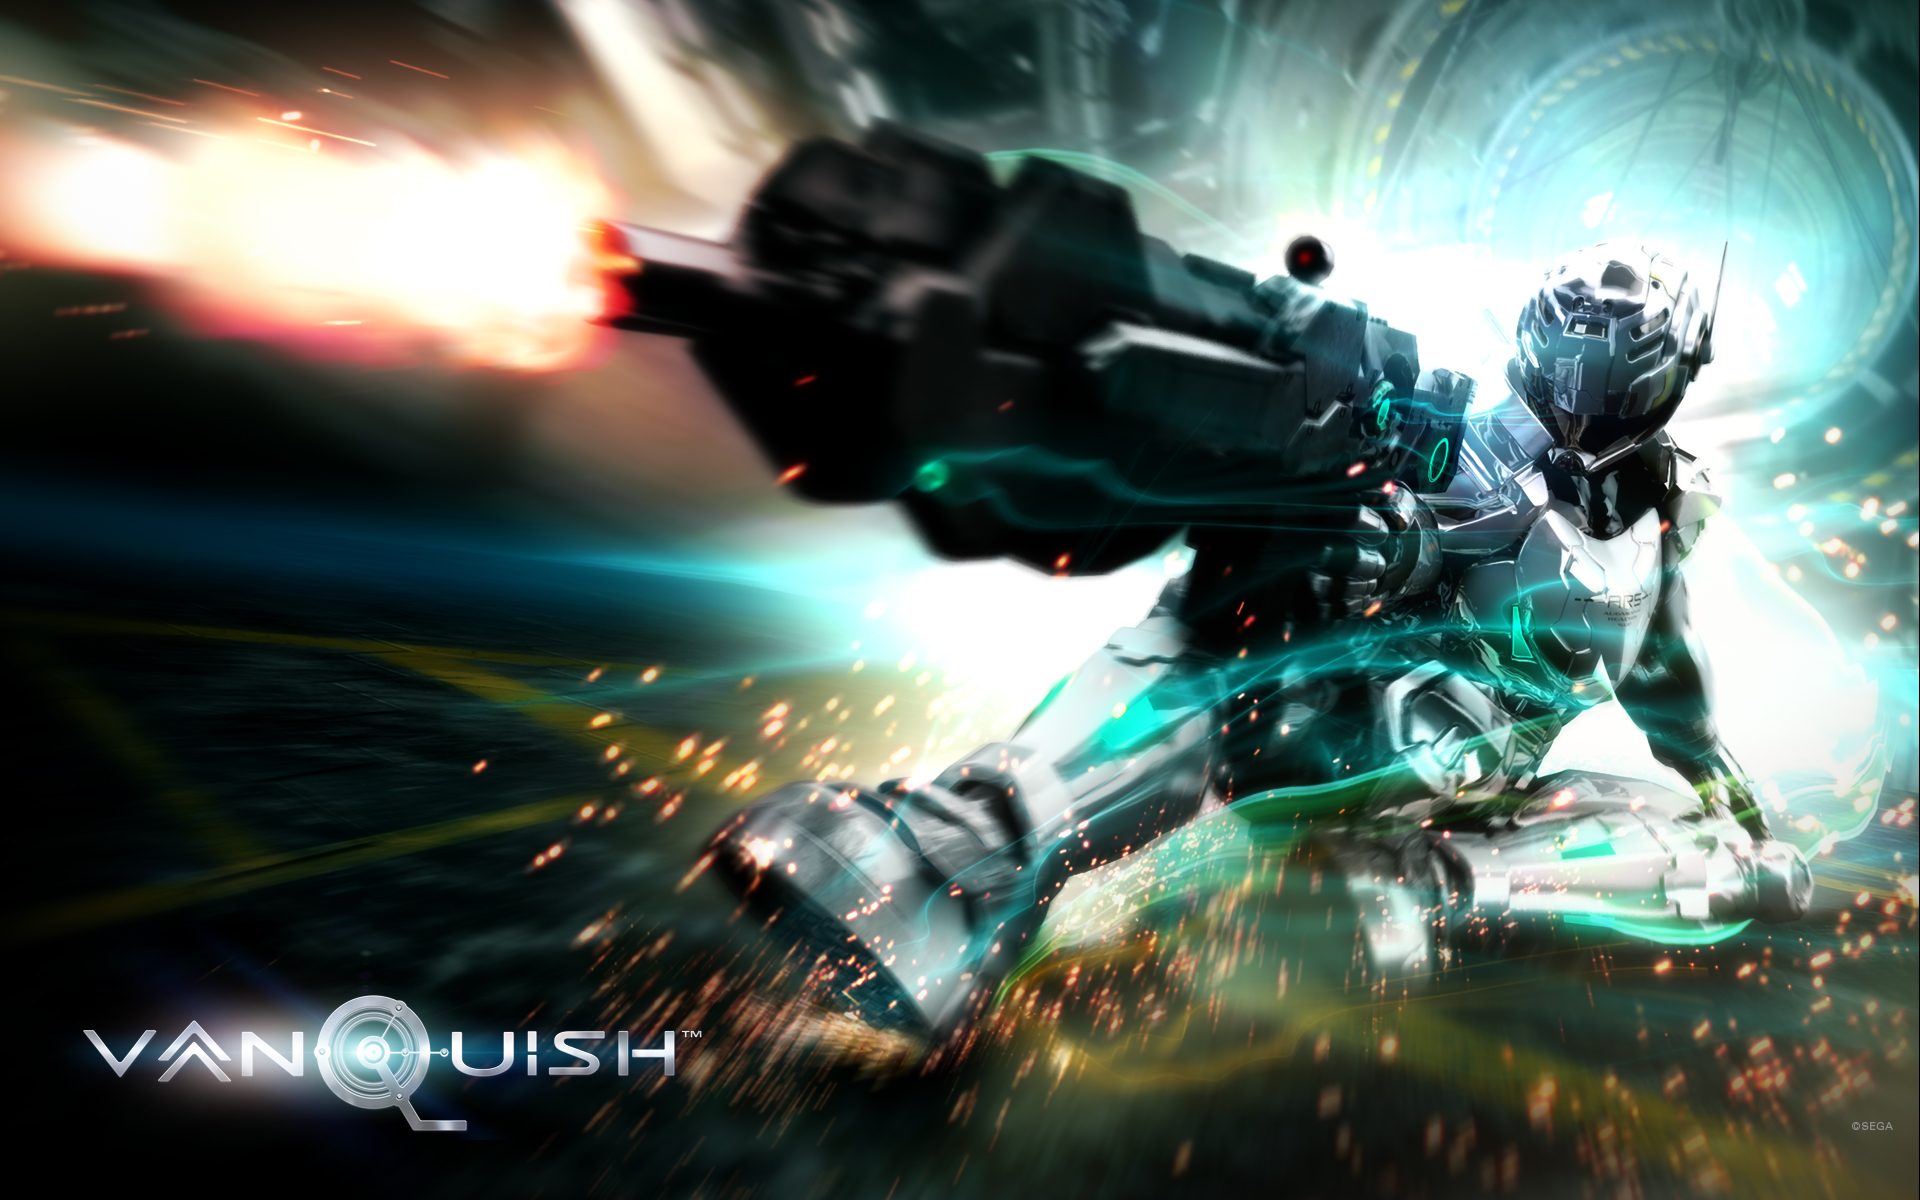 Vanqusih 2011 Game Wallpapers HD Wallpapers 1920x1200